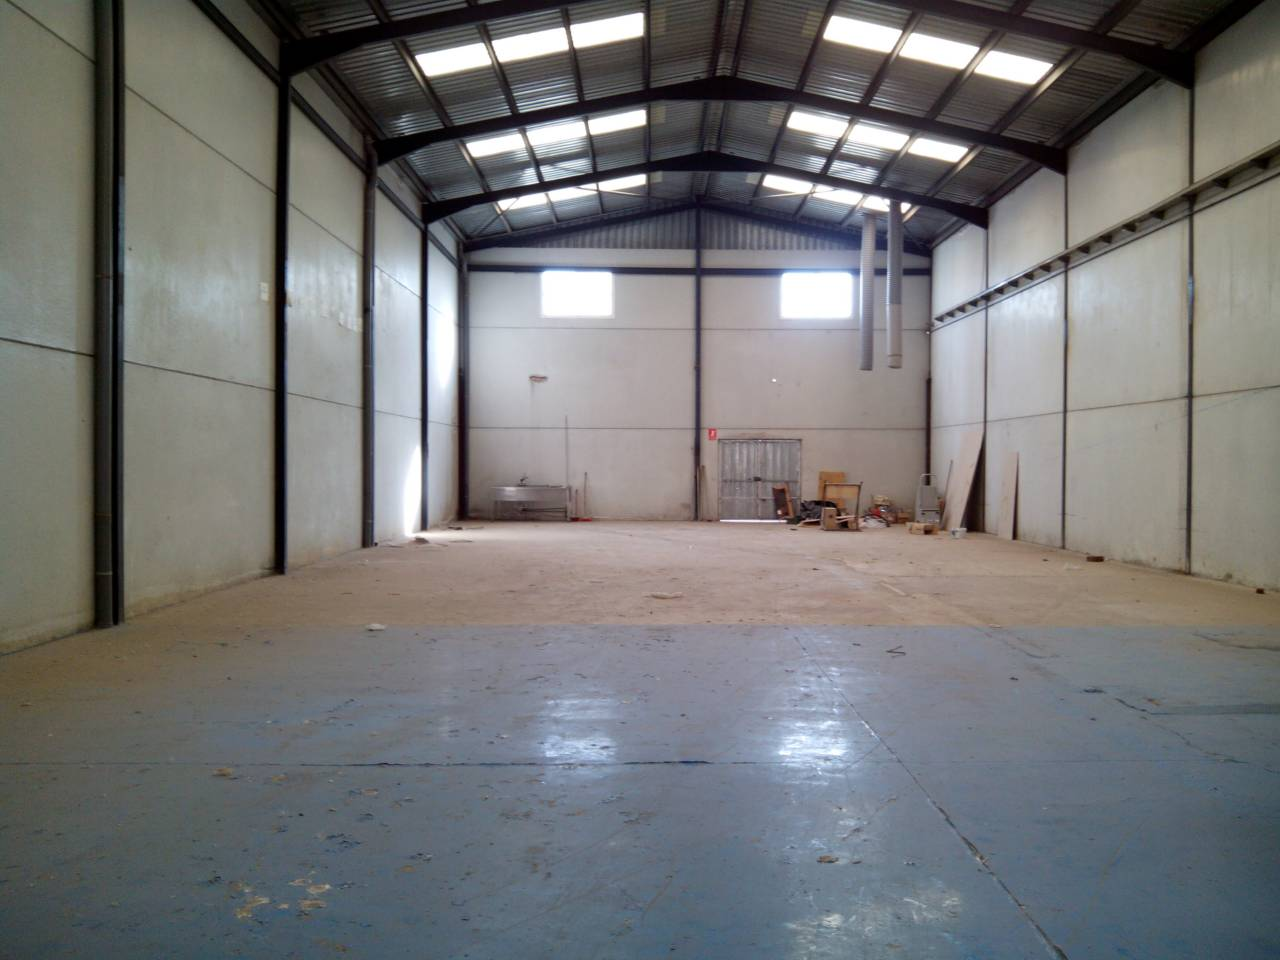 Alquiler Nave industrial en Beniparrell. Superf. 417 m², 417.75 m² solar,  1 aseo, oficina (1 despacho),